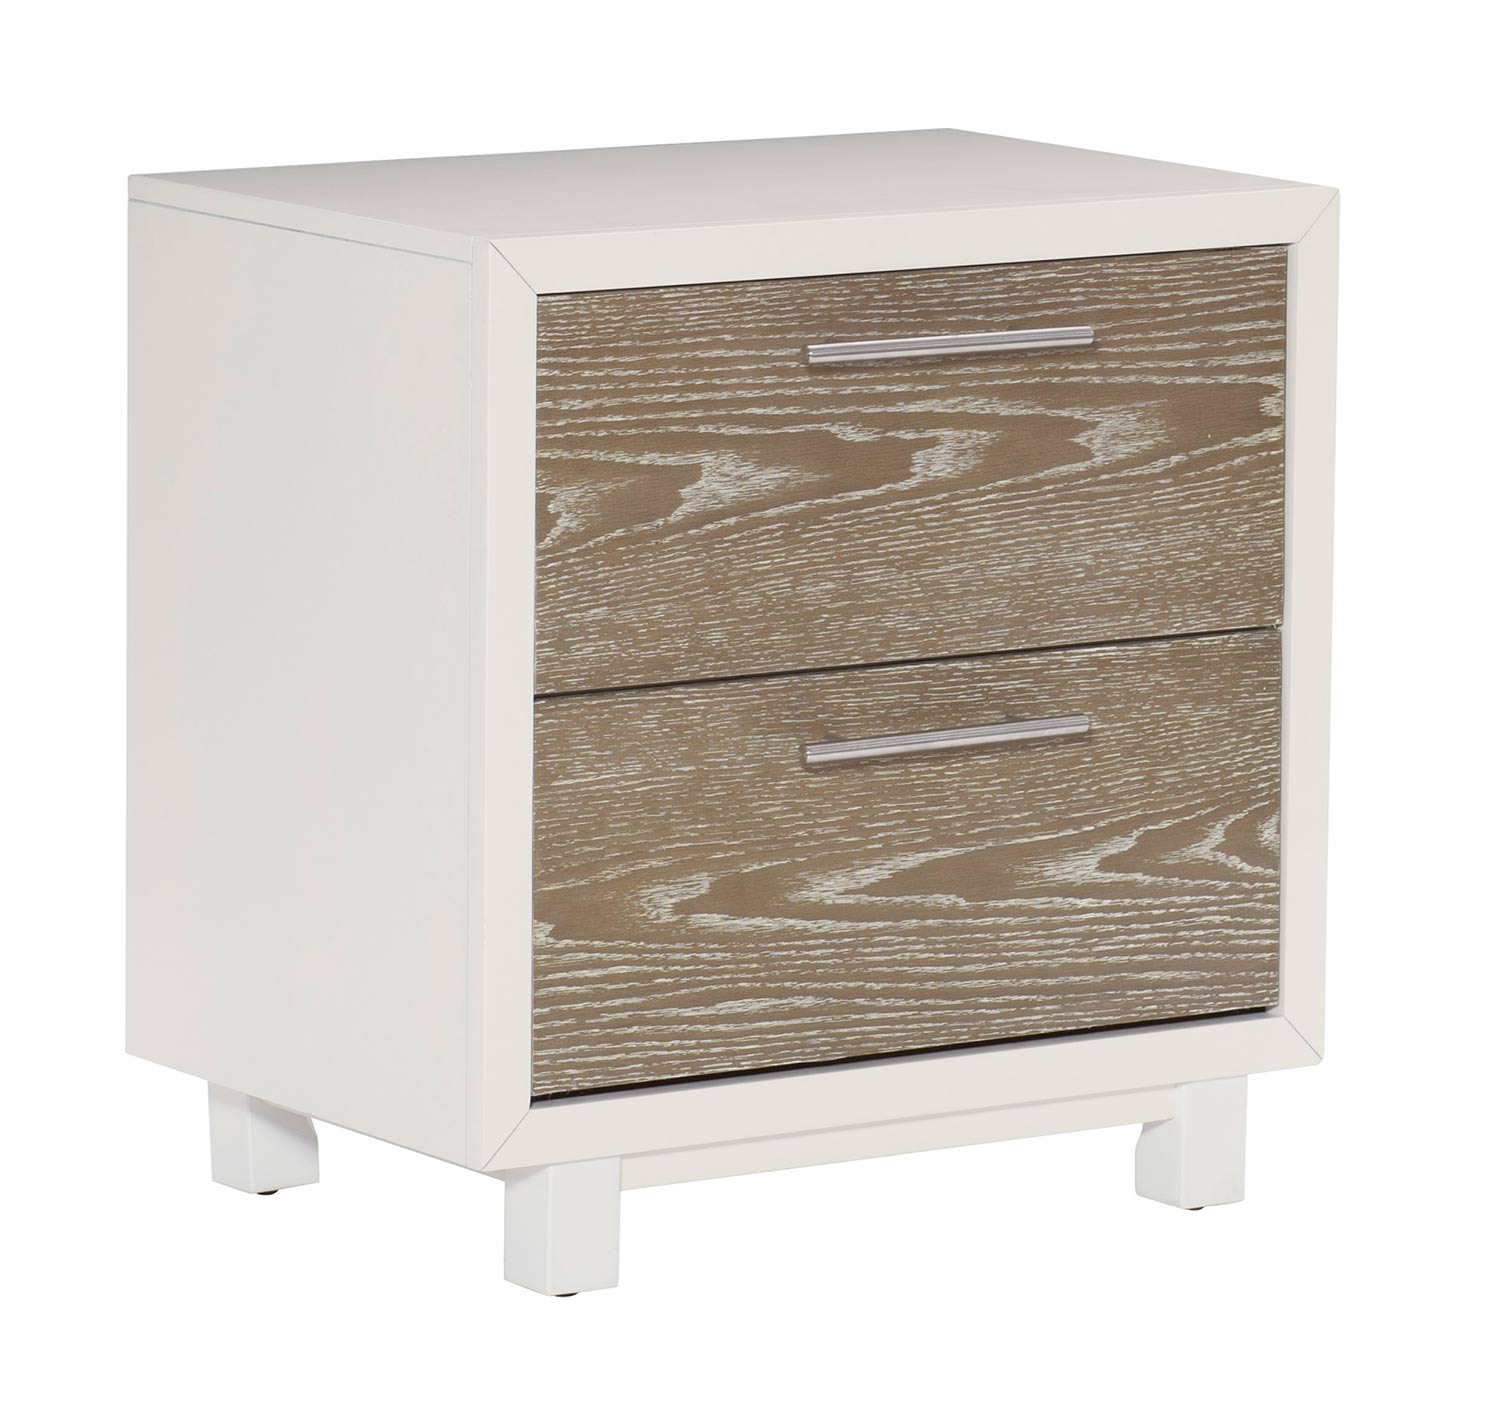 Homelegance Renly Night Stand - Natural Finish of Oak Veneer with White Framing